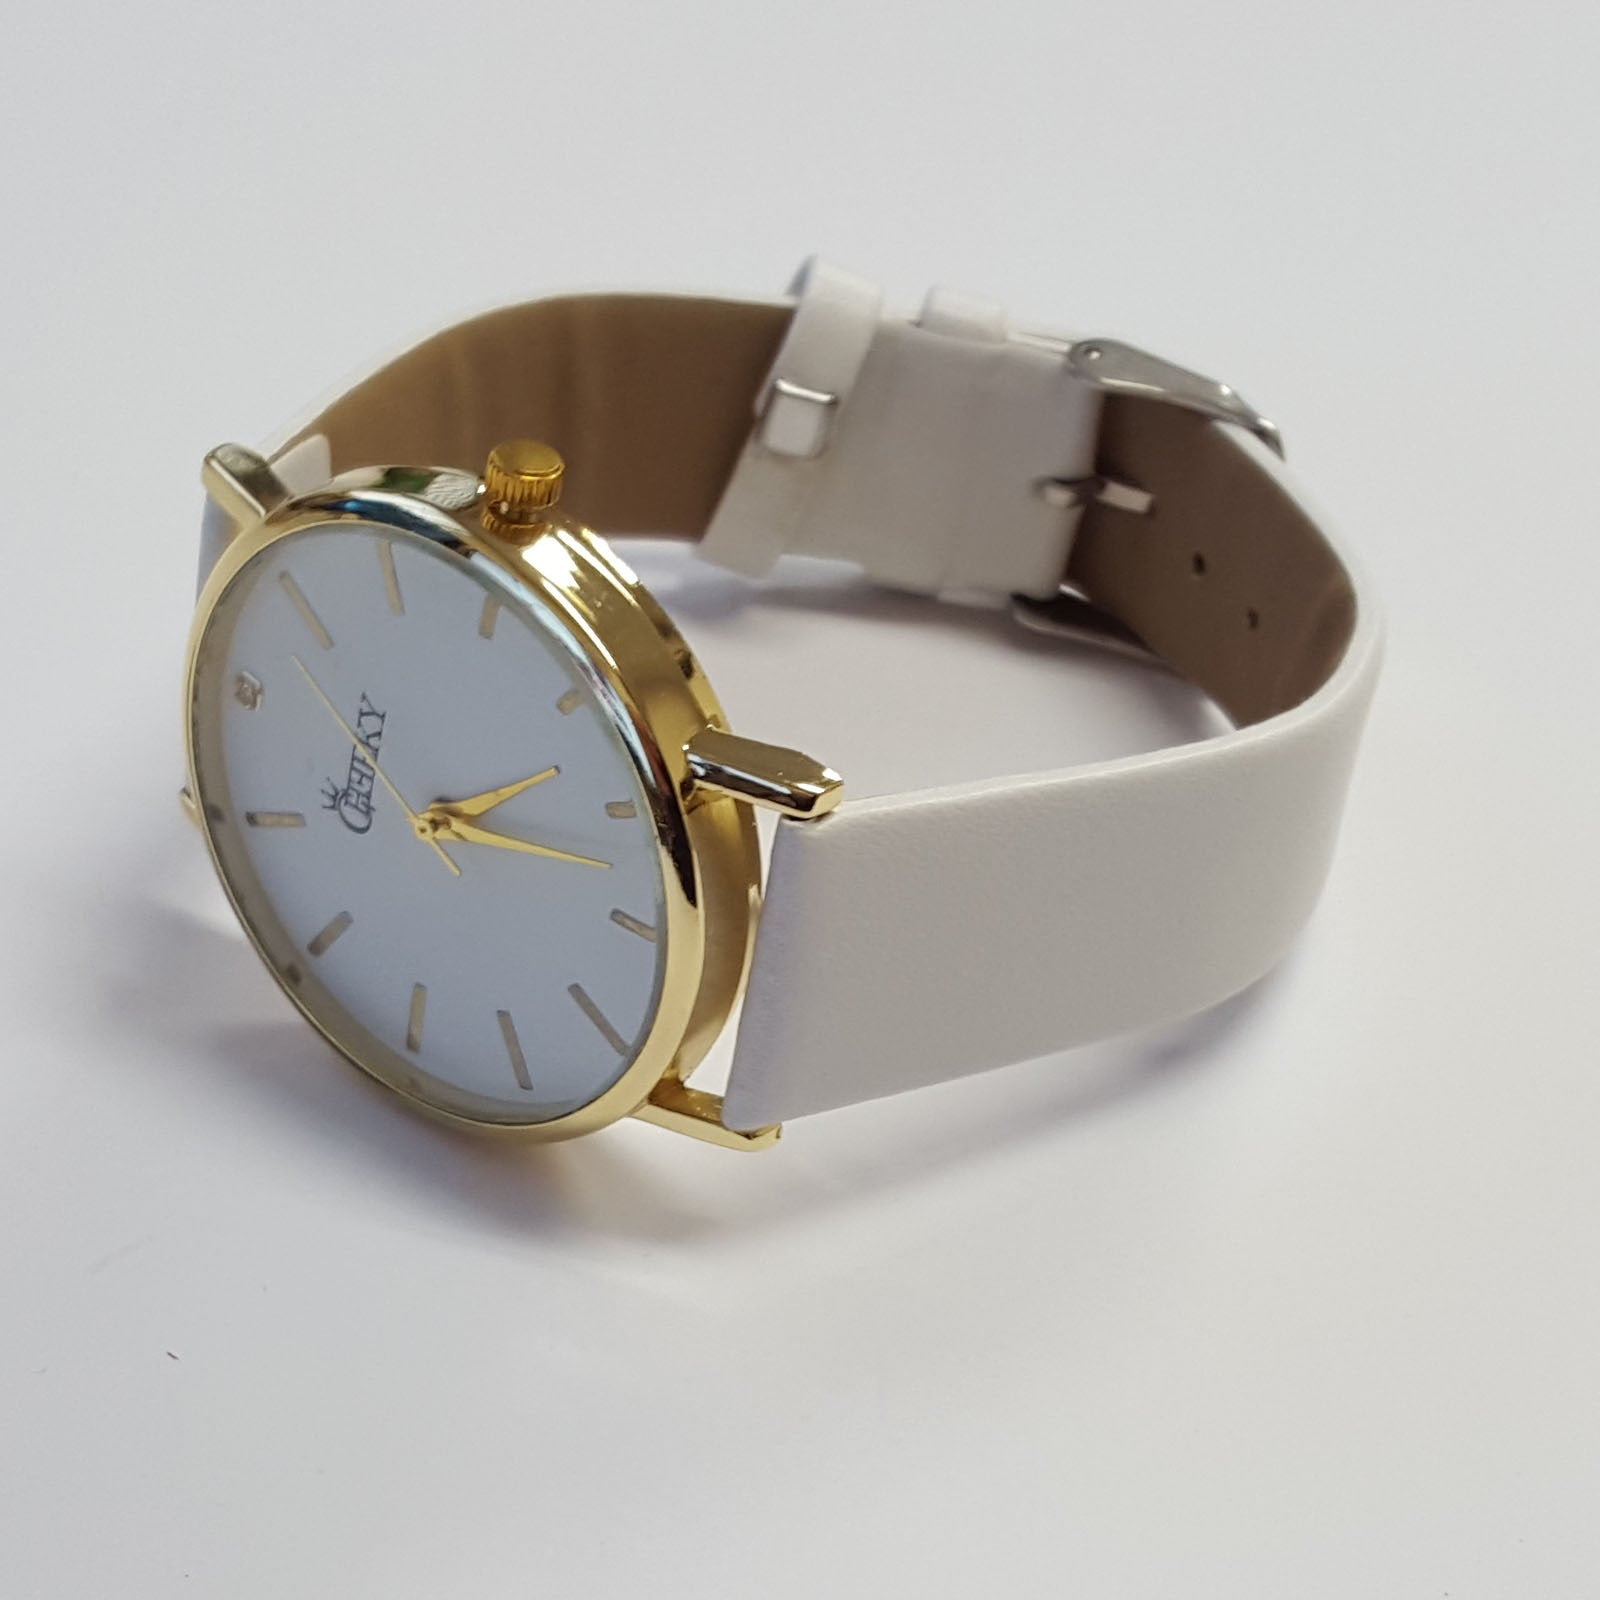 cheeky ladies faux white leather large face analogue watch he010 cheeky ladies faux white leather large face analogue watch he010 white